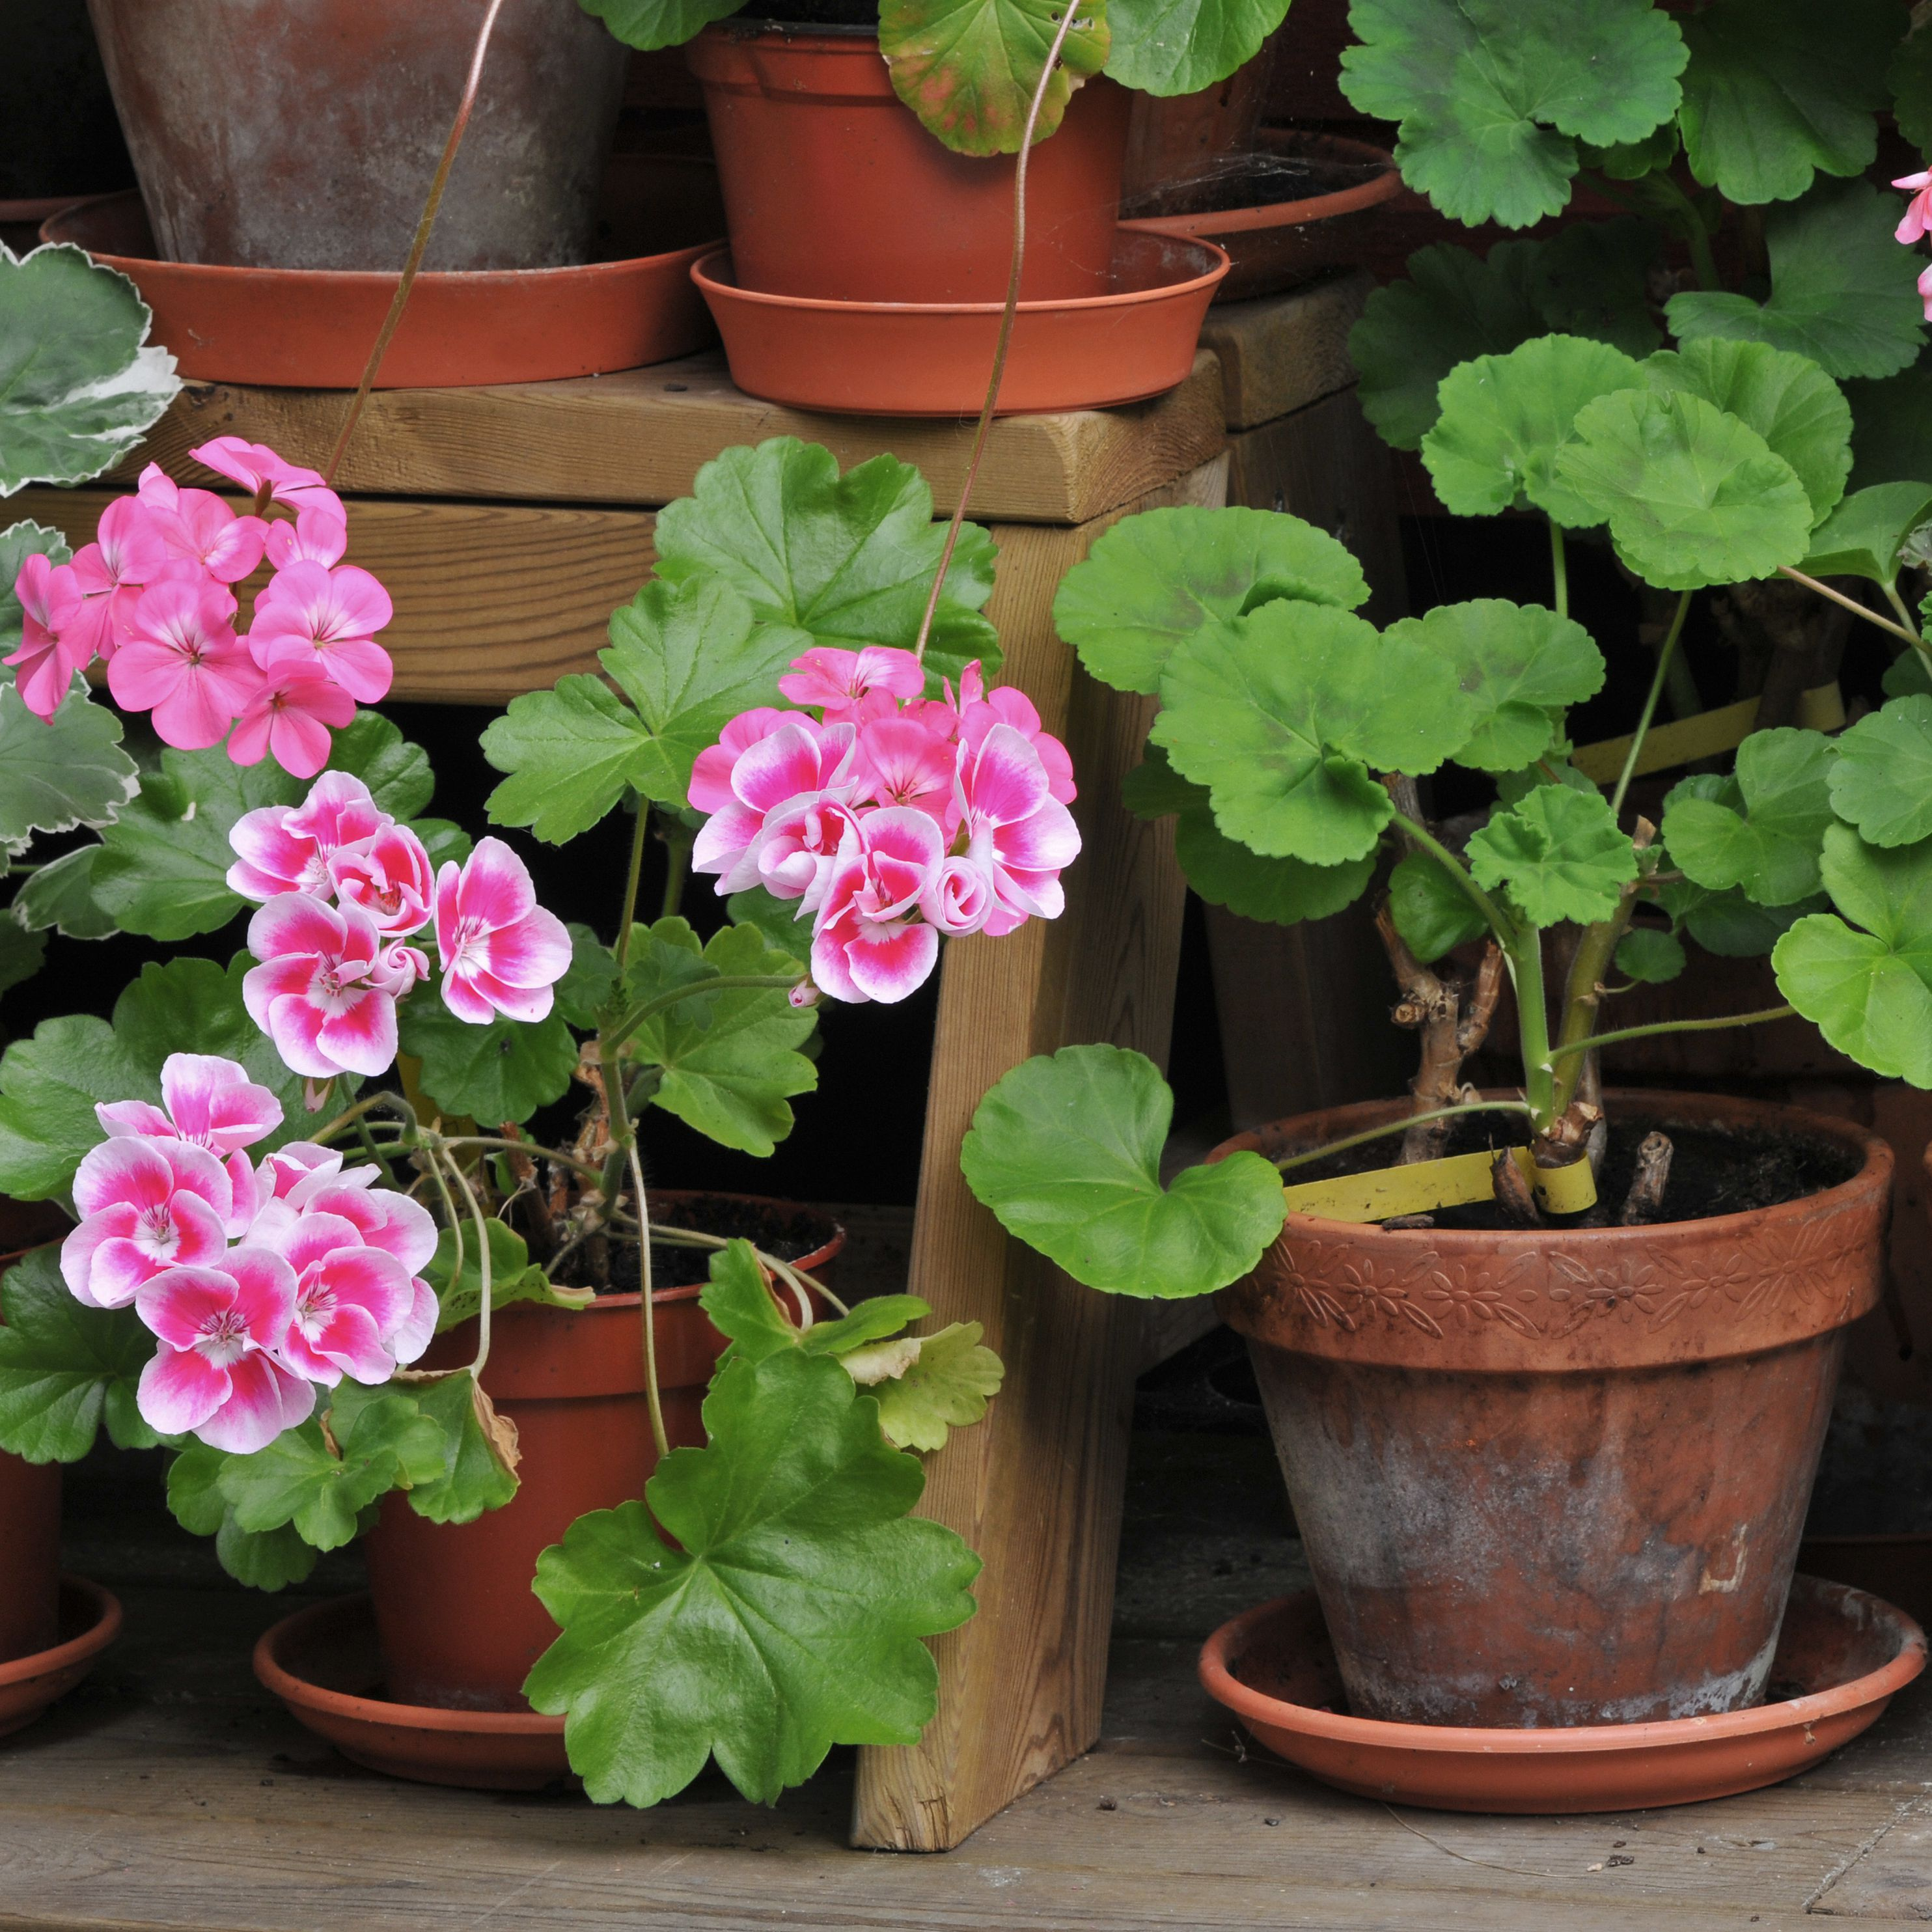 How To Overwinter Geraniums